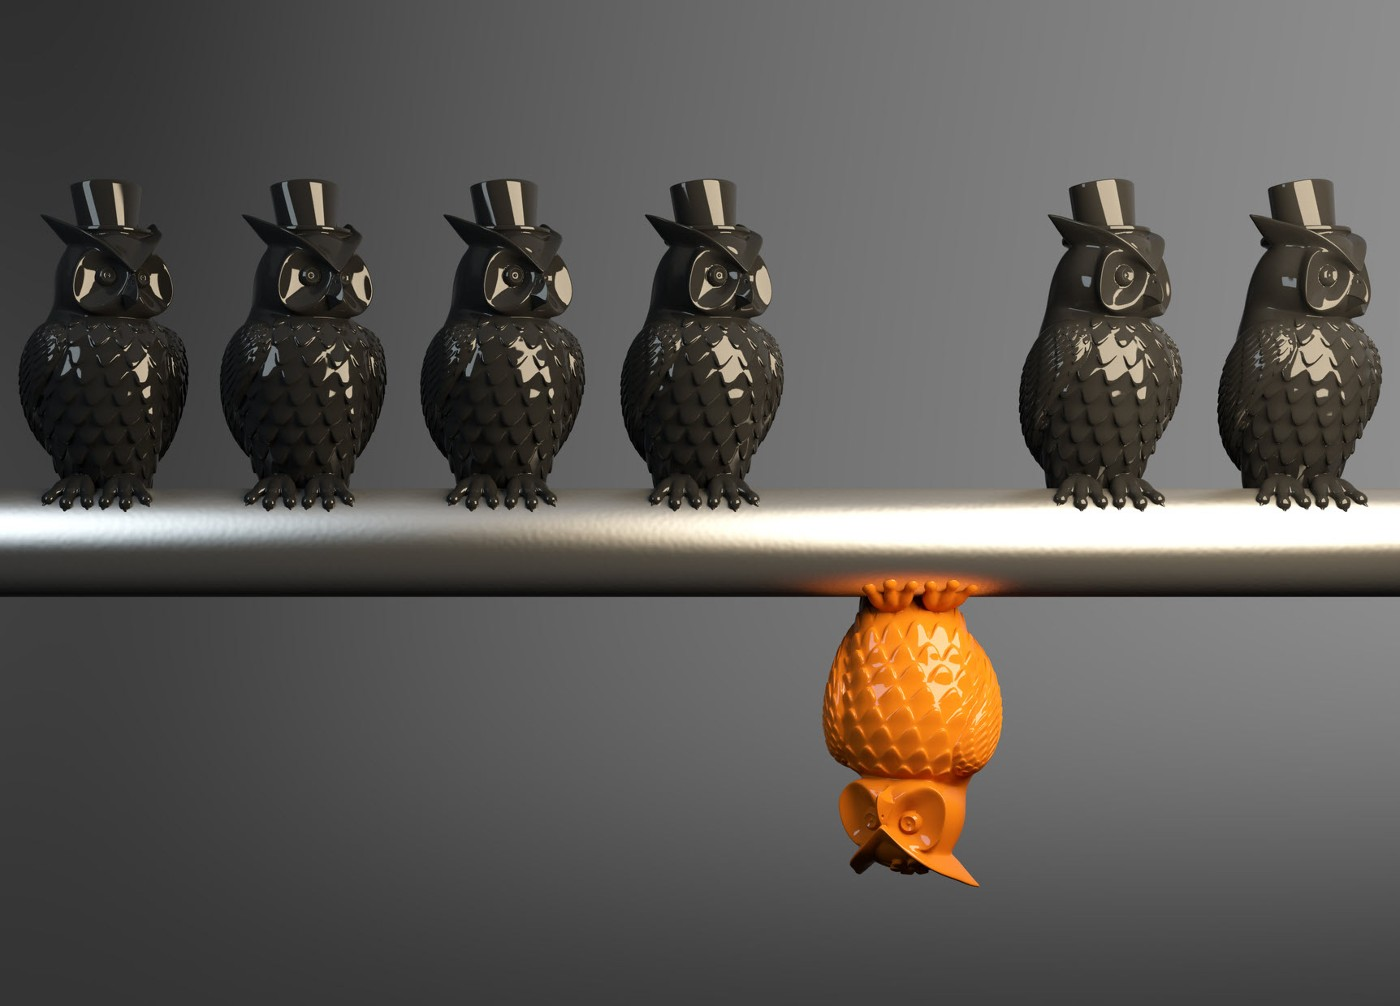 https://tickertapecdn.tdameritrade.com/assets/images/pages/md/One of these plastic owls is not like the others: Selling short